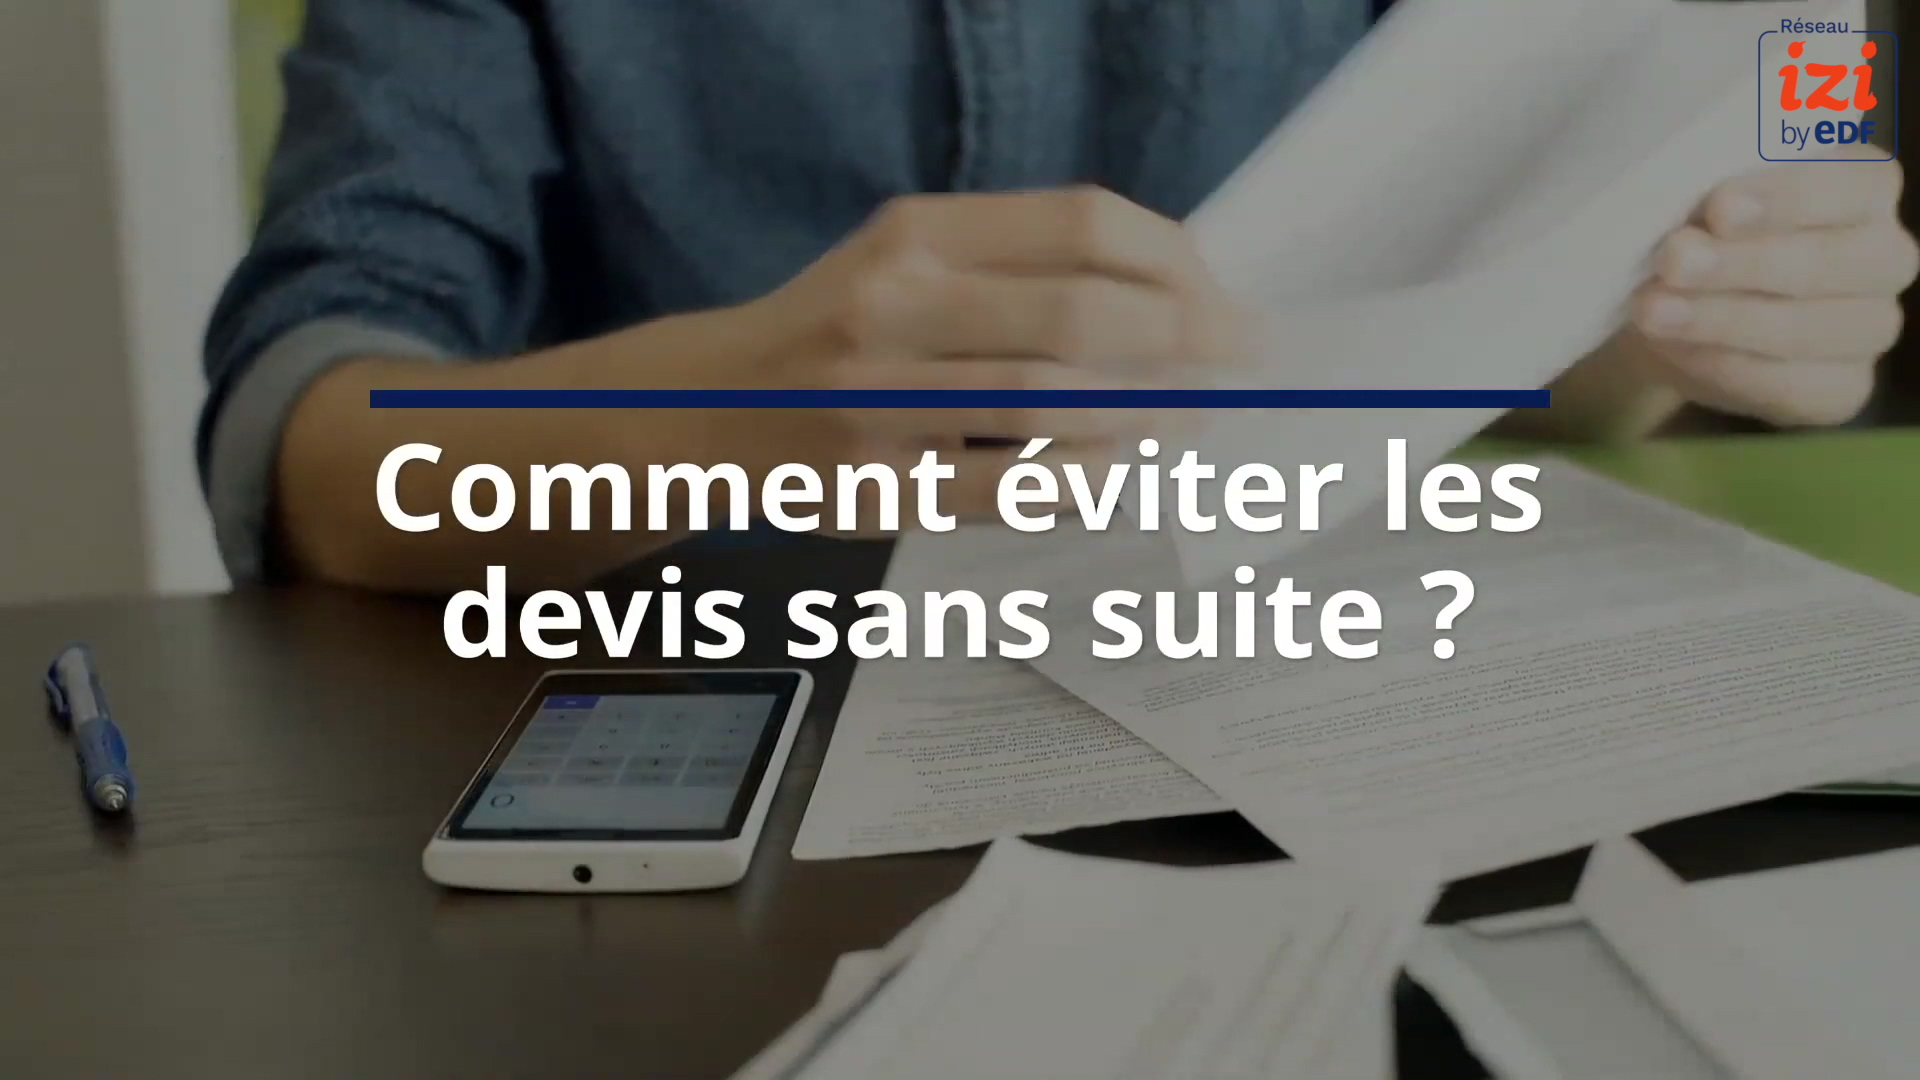 Reseau IZI by EDF-Video10-eviter-devis-sans-suite